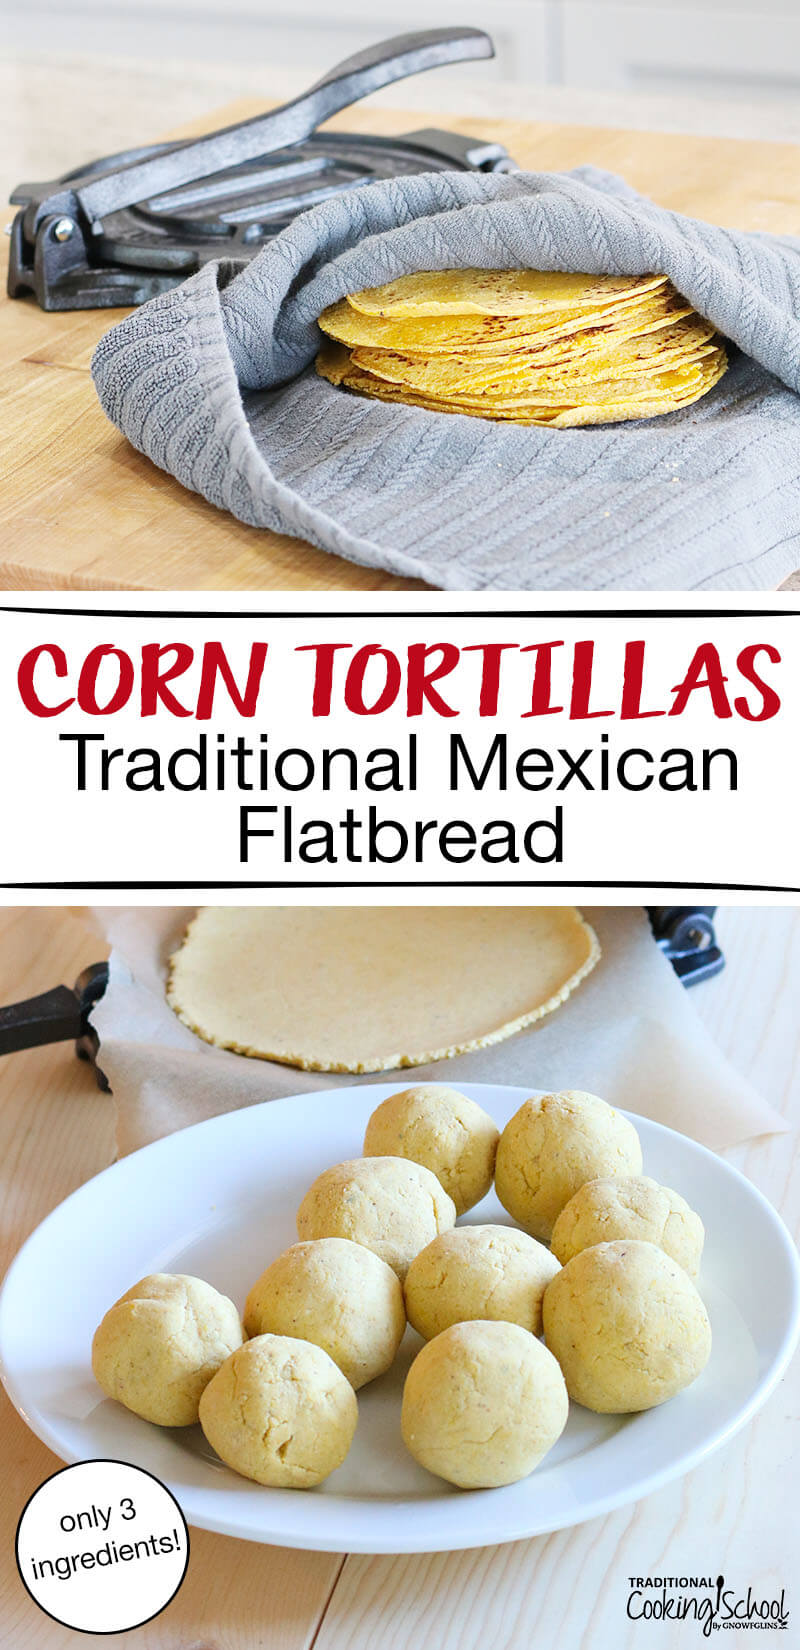 "photo collage of making authentic corn tortillas with text overlay: ""Corn Tortillas (Traditional Mexican Flatbread with only 3 ingredients!)"""